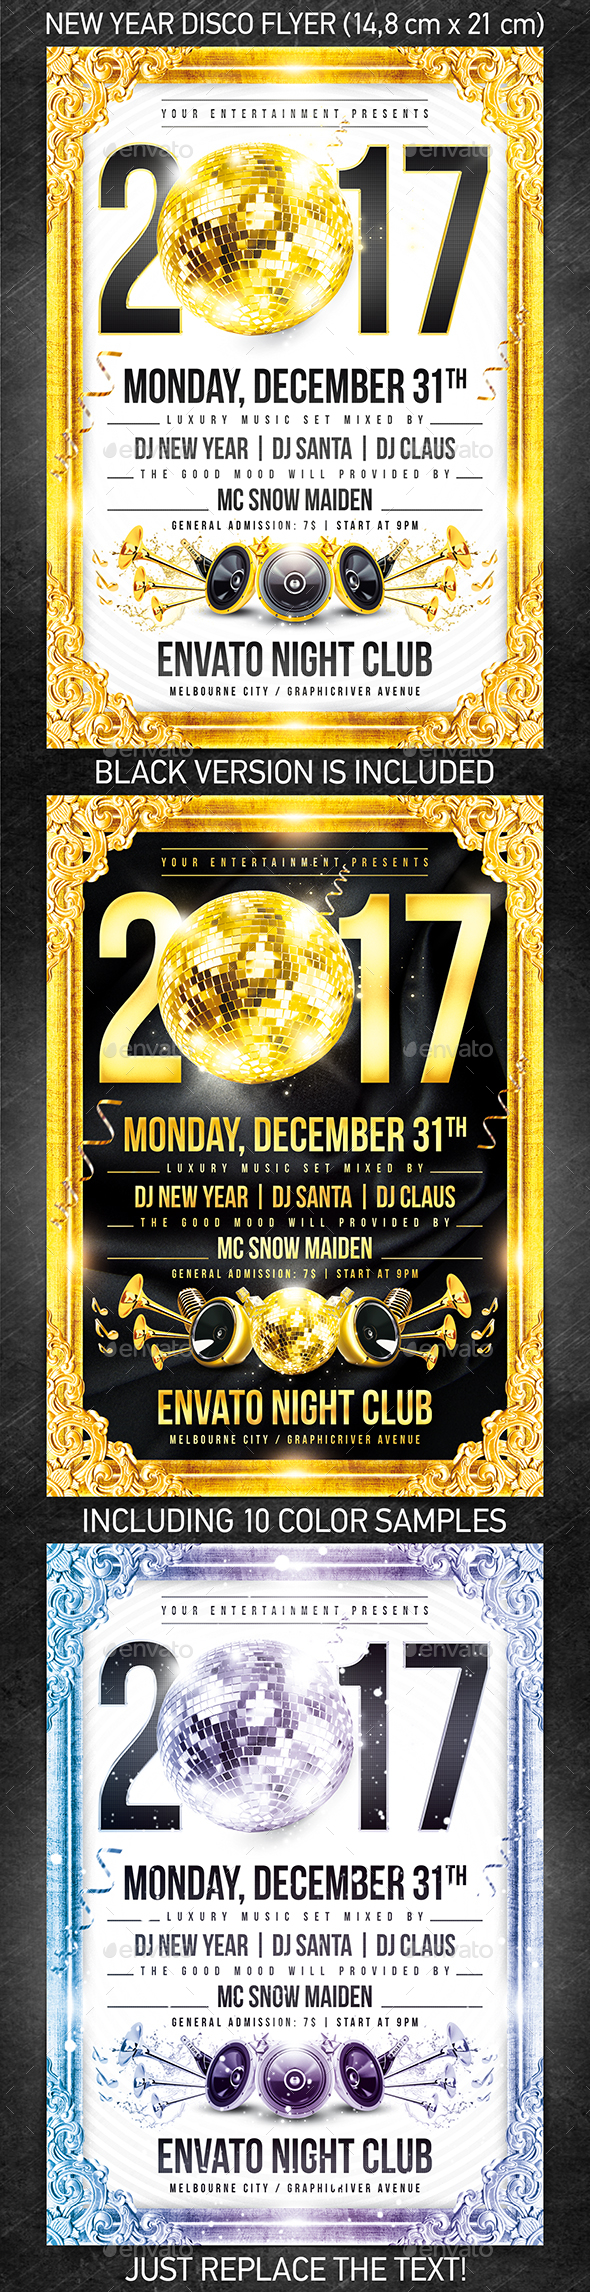 New Year Disco Flyer #2 - Holidays Events